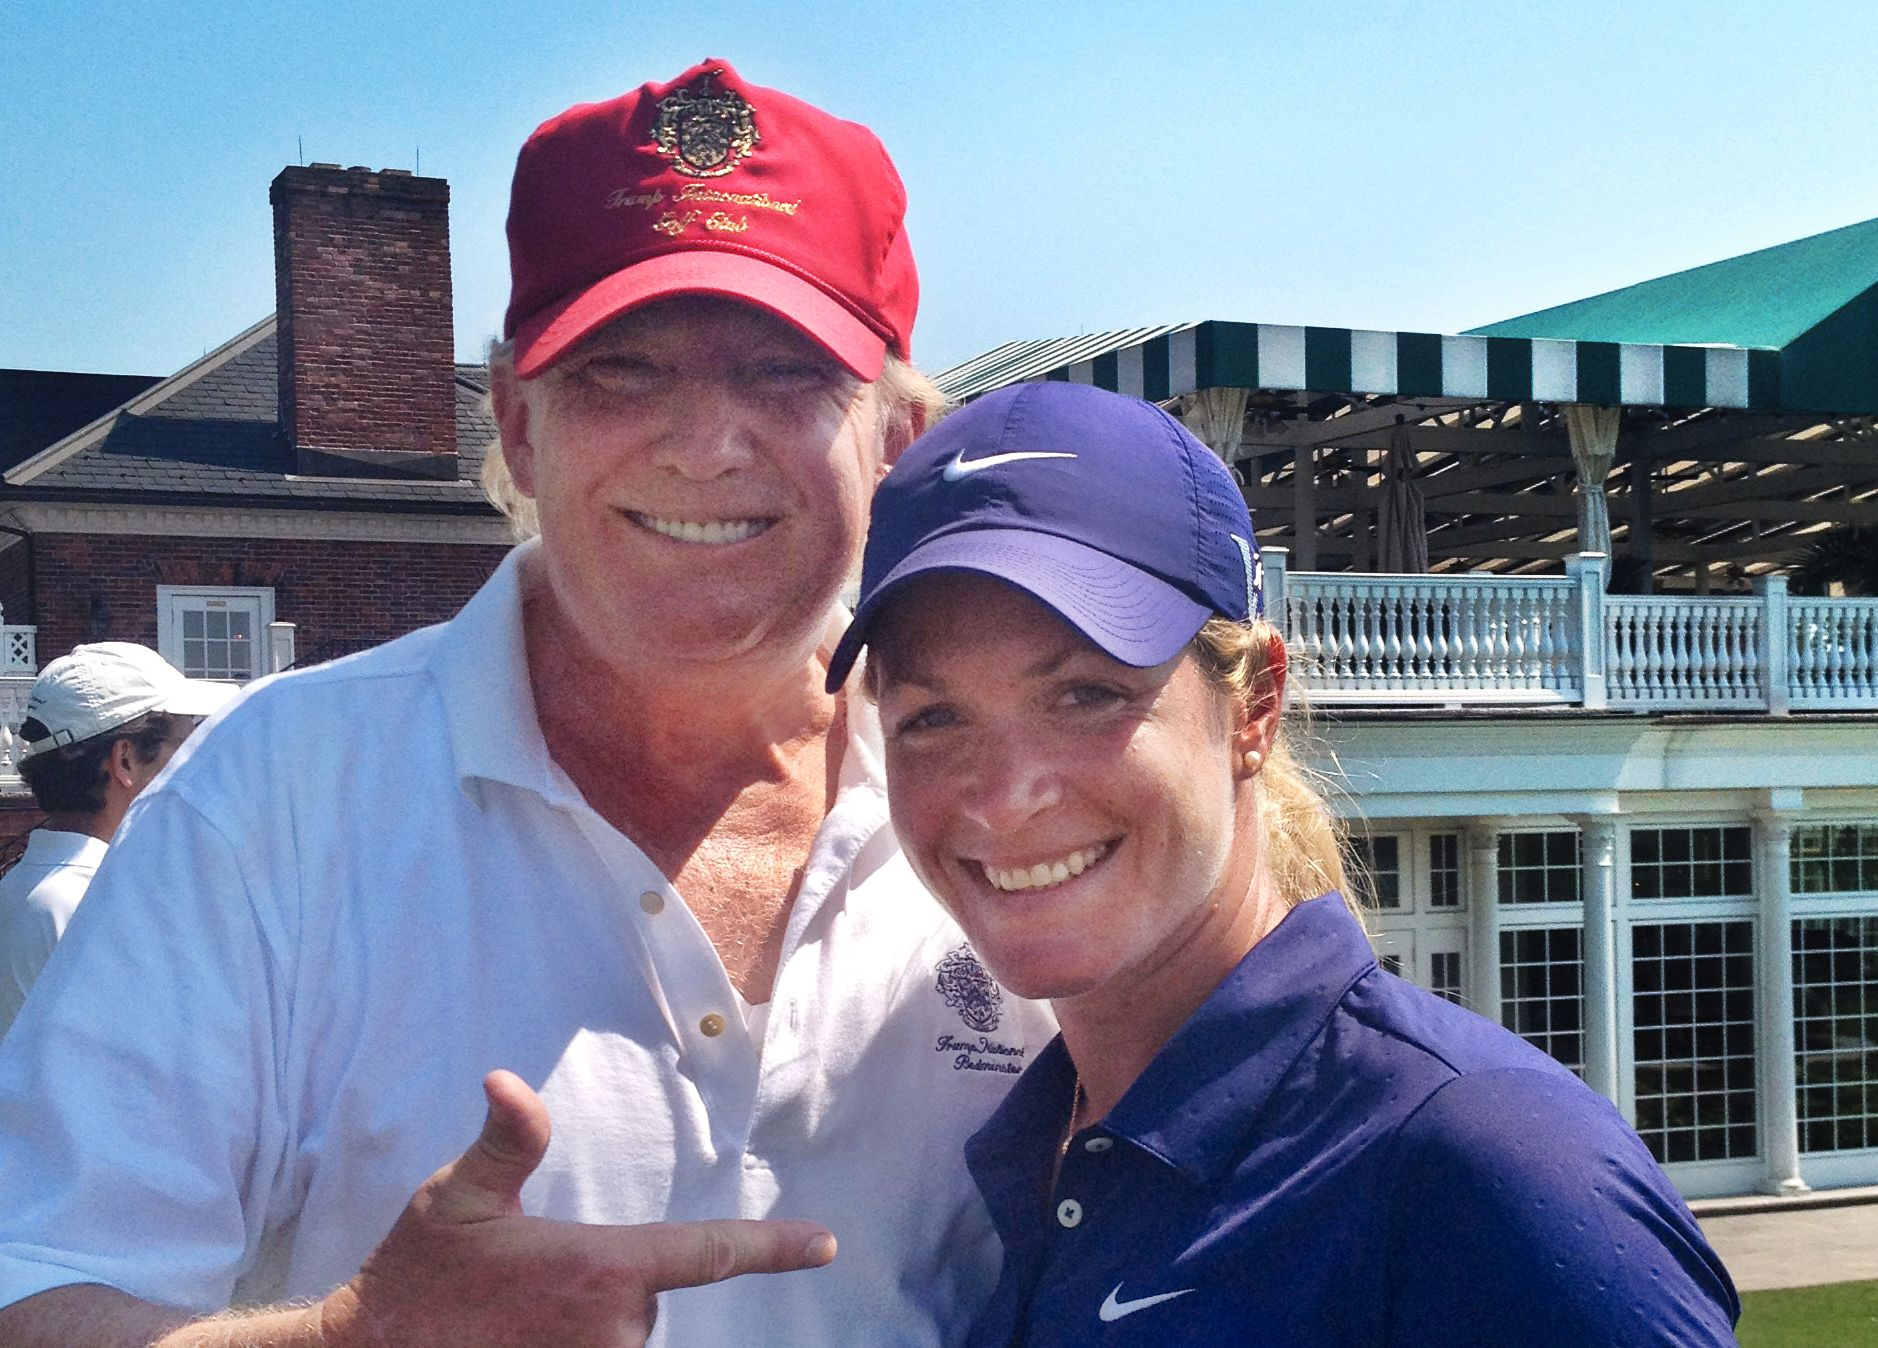 TRUMP'S PICK: Suzann Pettersen took this picture of herself with Donald Trump. He has given her lots of good advice over the years.